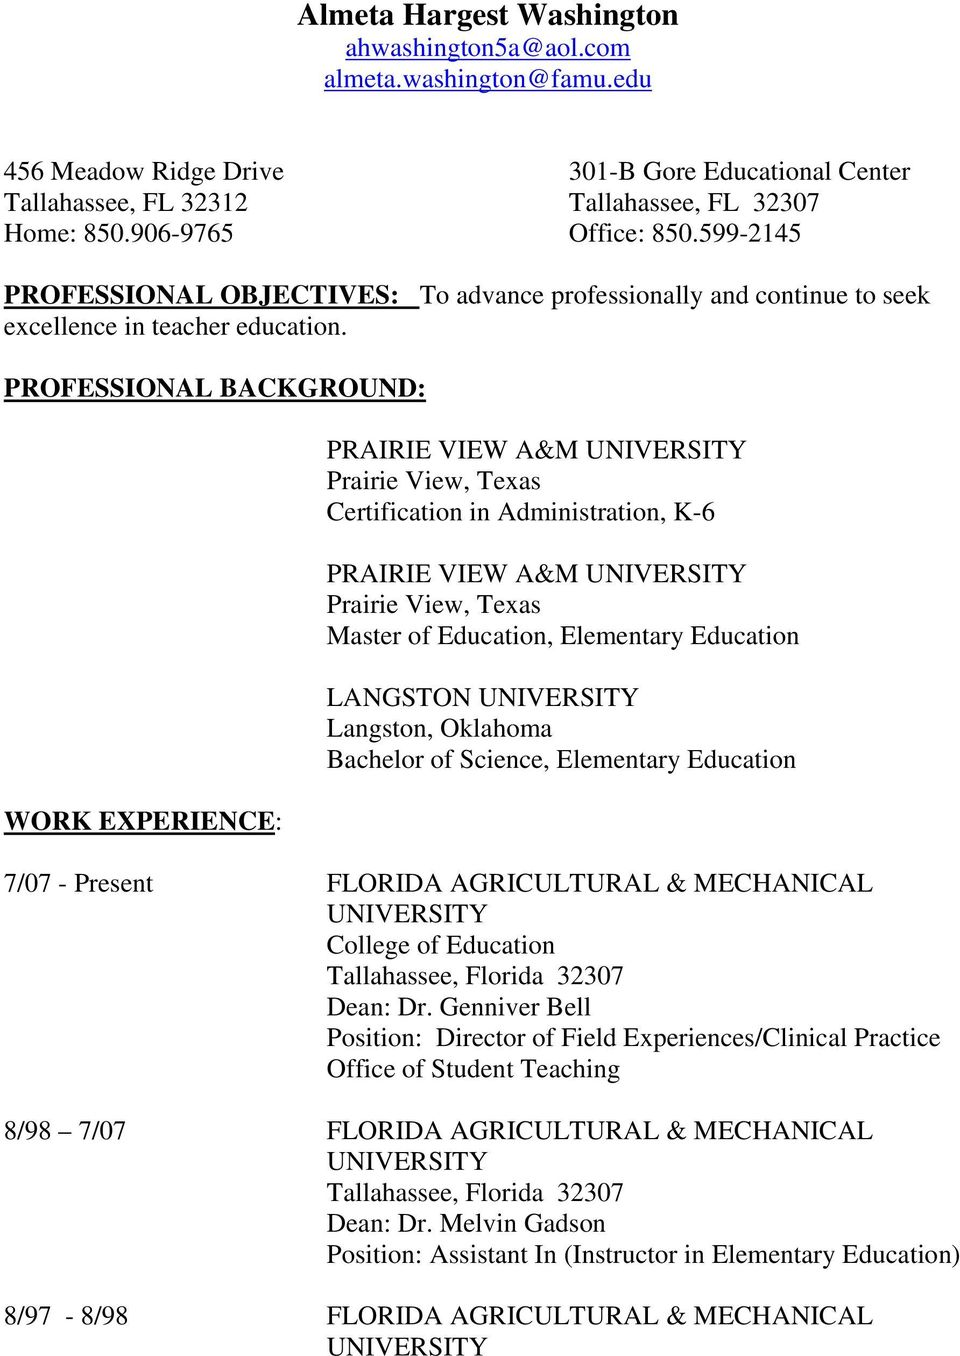 PROFESSIONAL BACKGROUND: WORK EXPERIENCE: PRAIRIE VIEW A&M UNIVERSITY Prairie View, Texas Certification in Administration, K-6 PRAIRIE VIEW A&M UNIVERSITY Prairie View, Texas Master of Education,